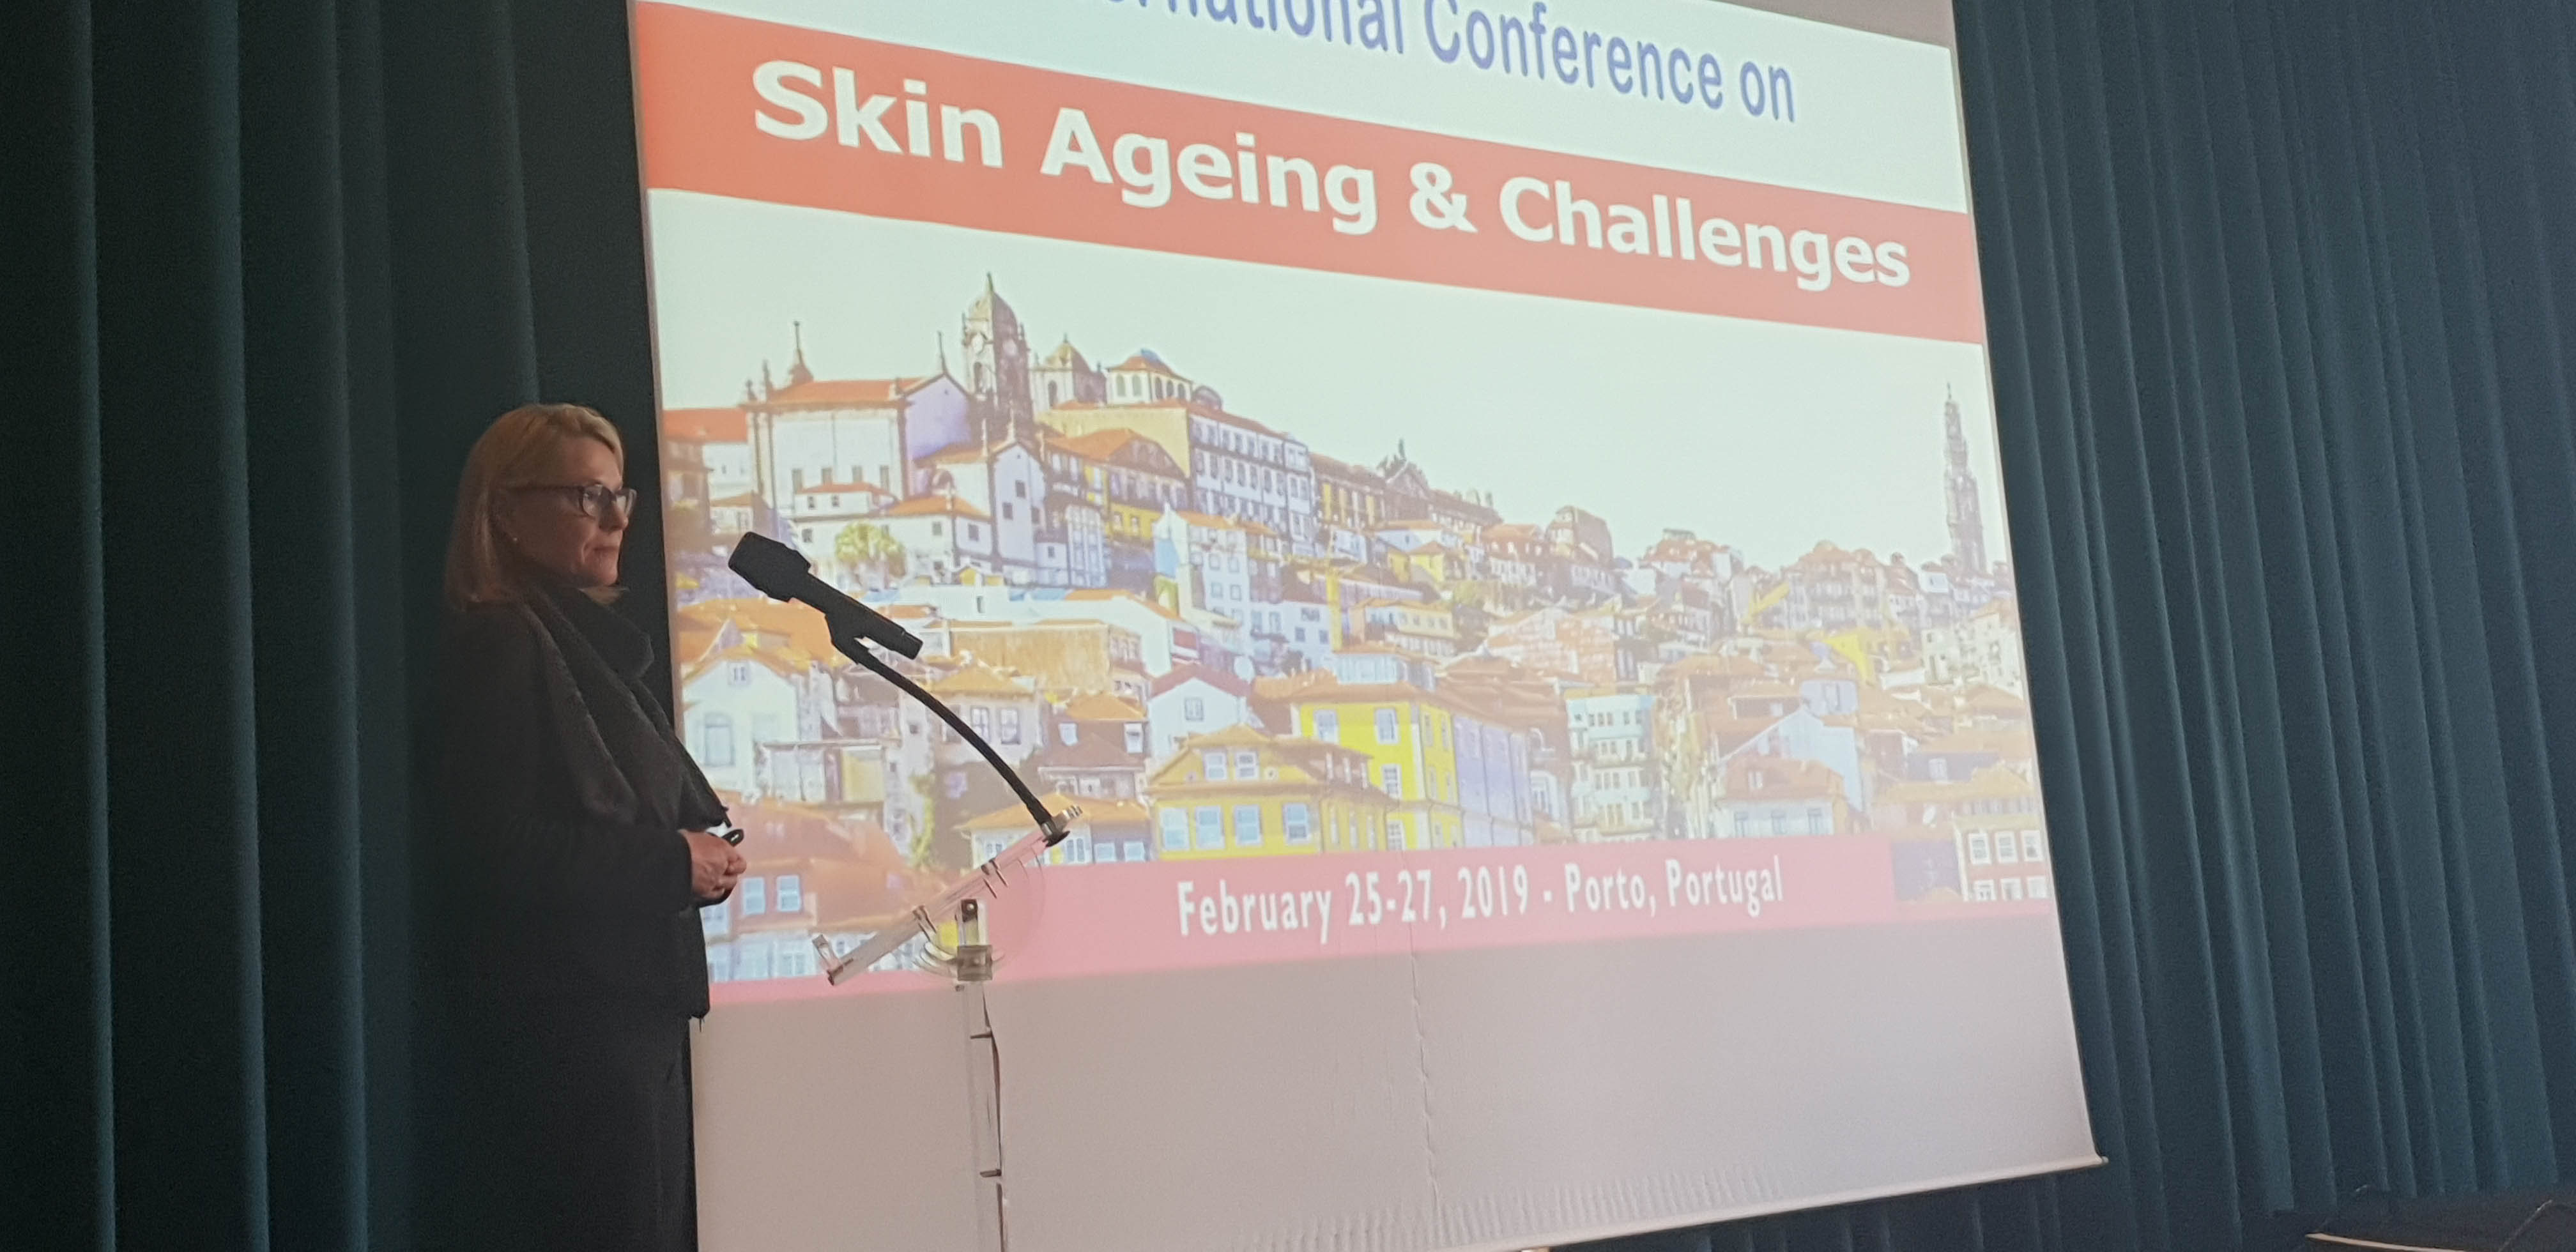 Skin Ageing Challenges 2019 Photo-20